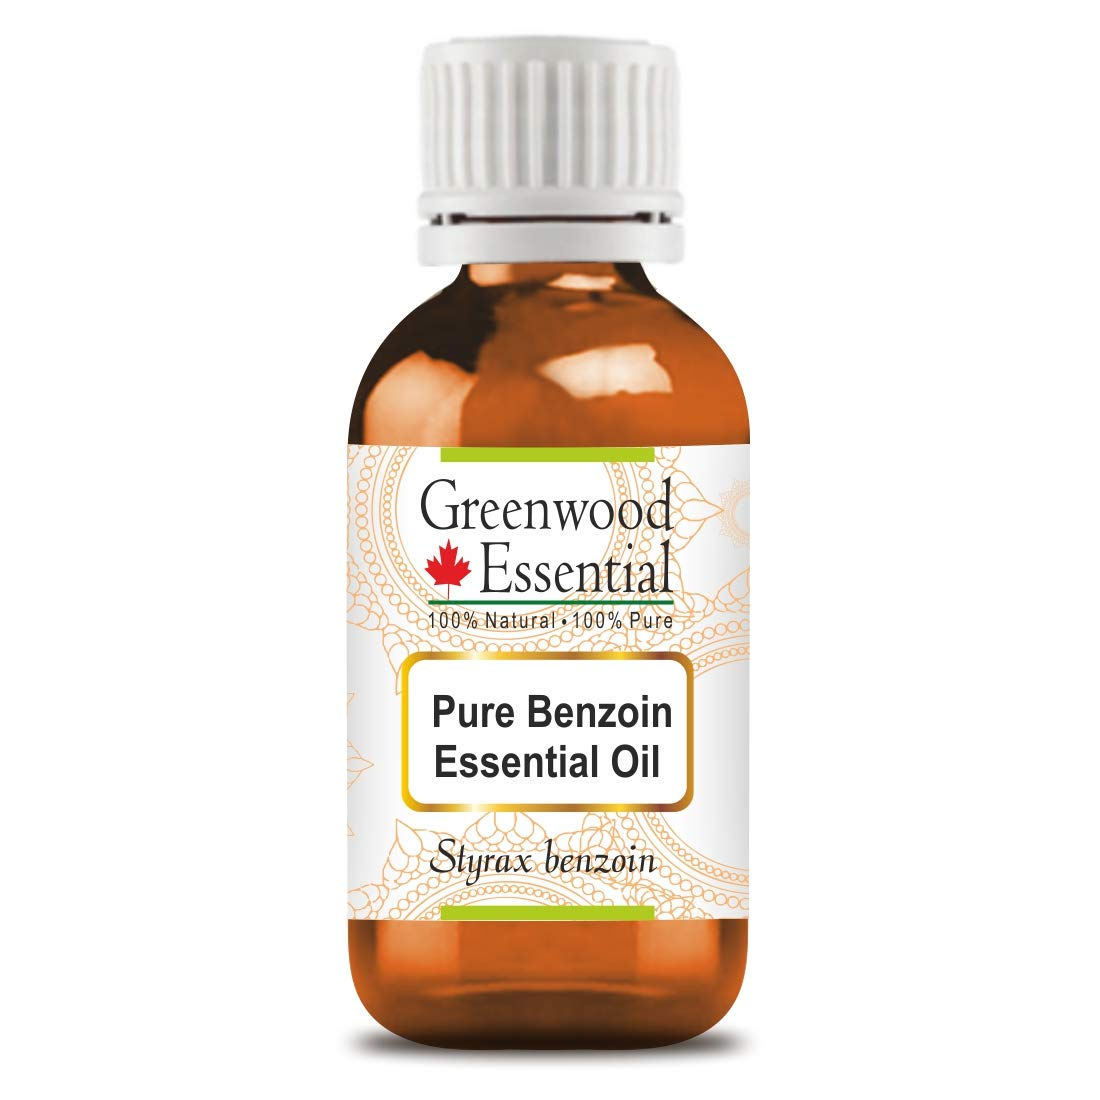 Greenwood Essential Pure Benzoin Essential Oil (Styrax Benzoin)100% Natural Therapeutic Grade Steam Distilled 50ml (1.69 oz)